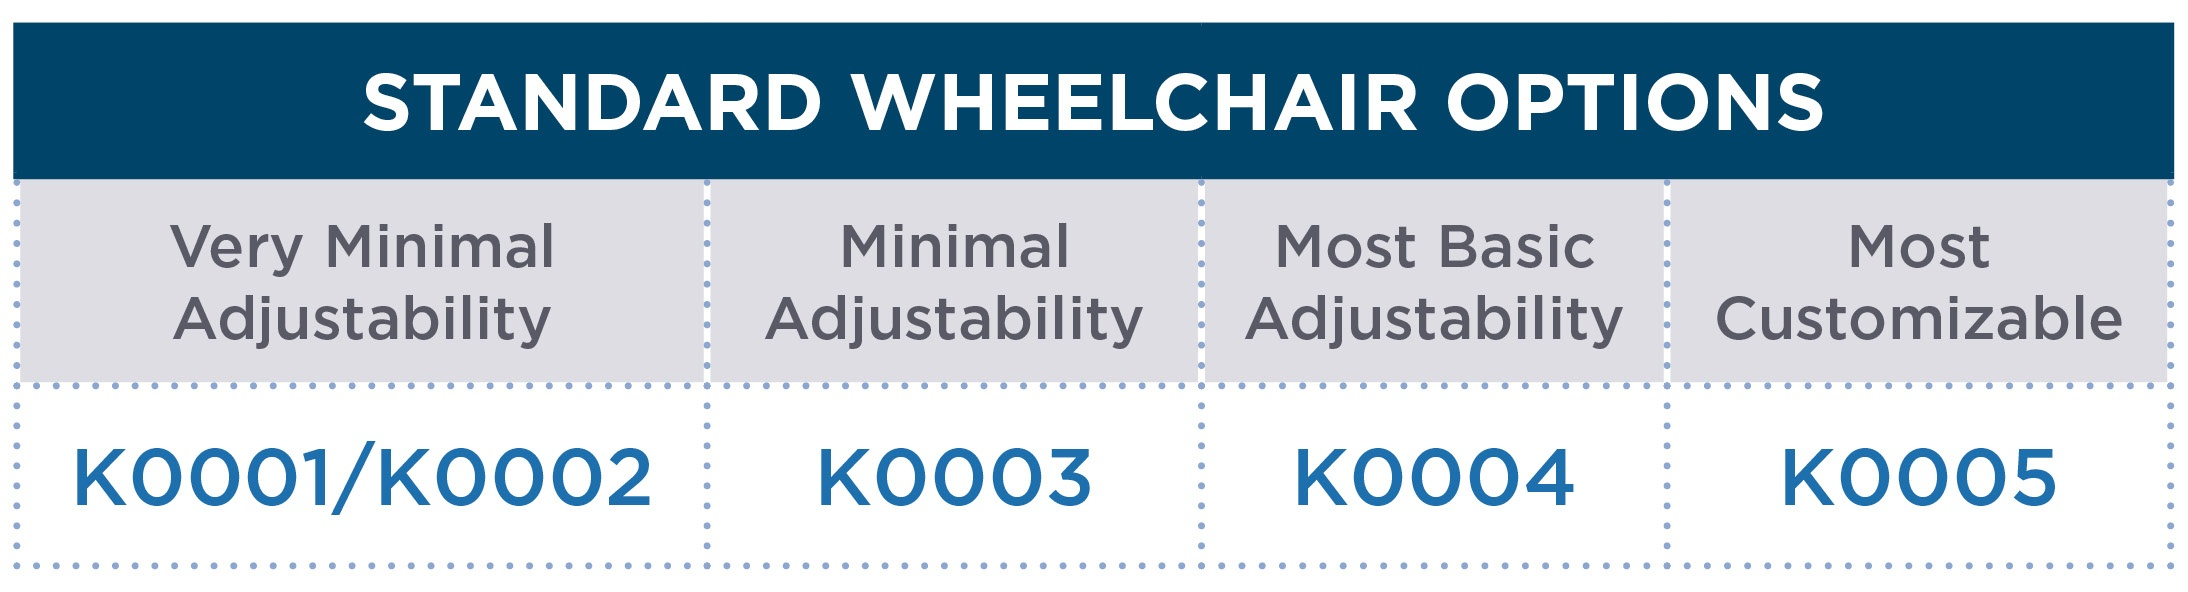 wheelchair seating positioning guide rh hub permobil com wheelchair positioning guidelines Wheelchair Fitting Guide for Therapists